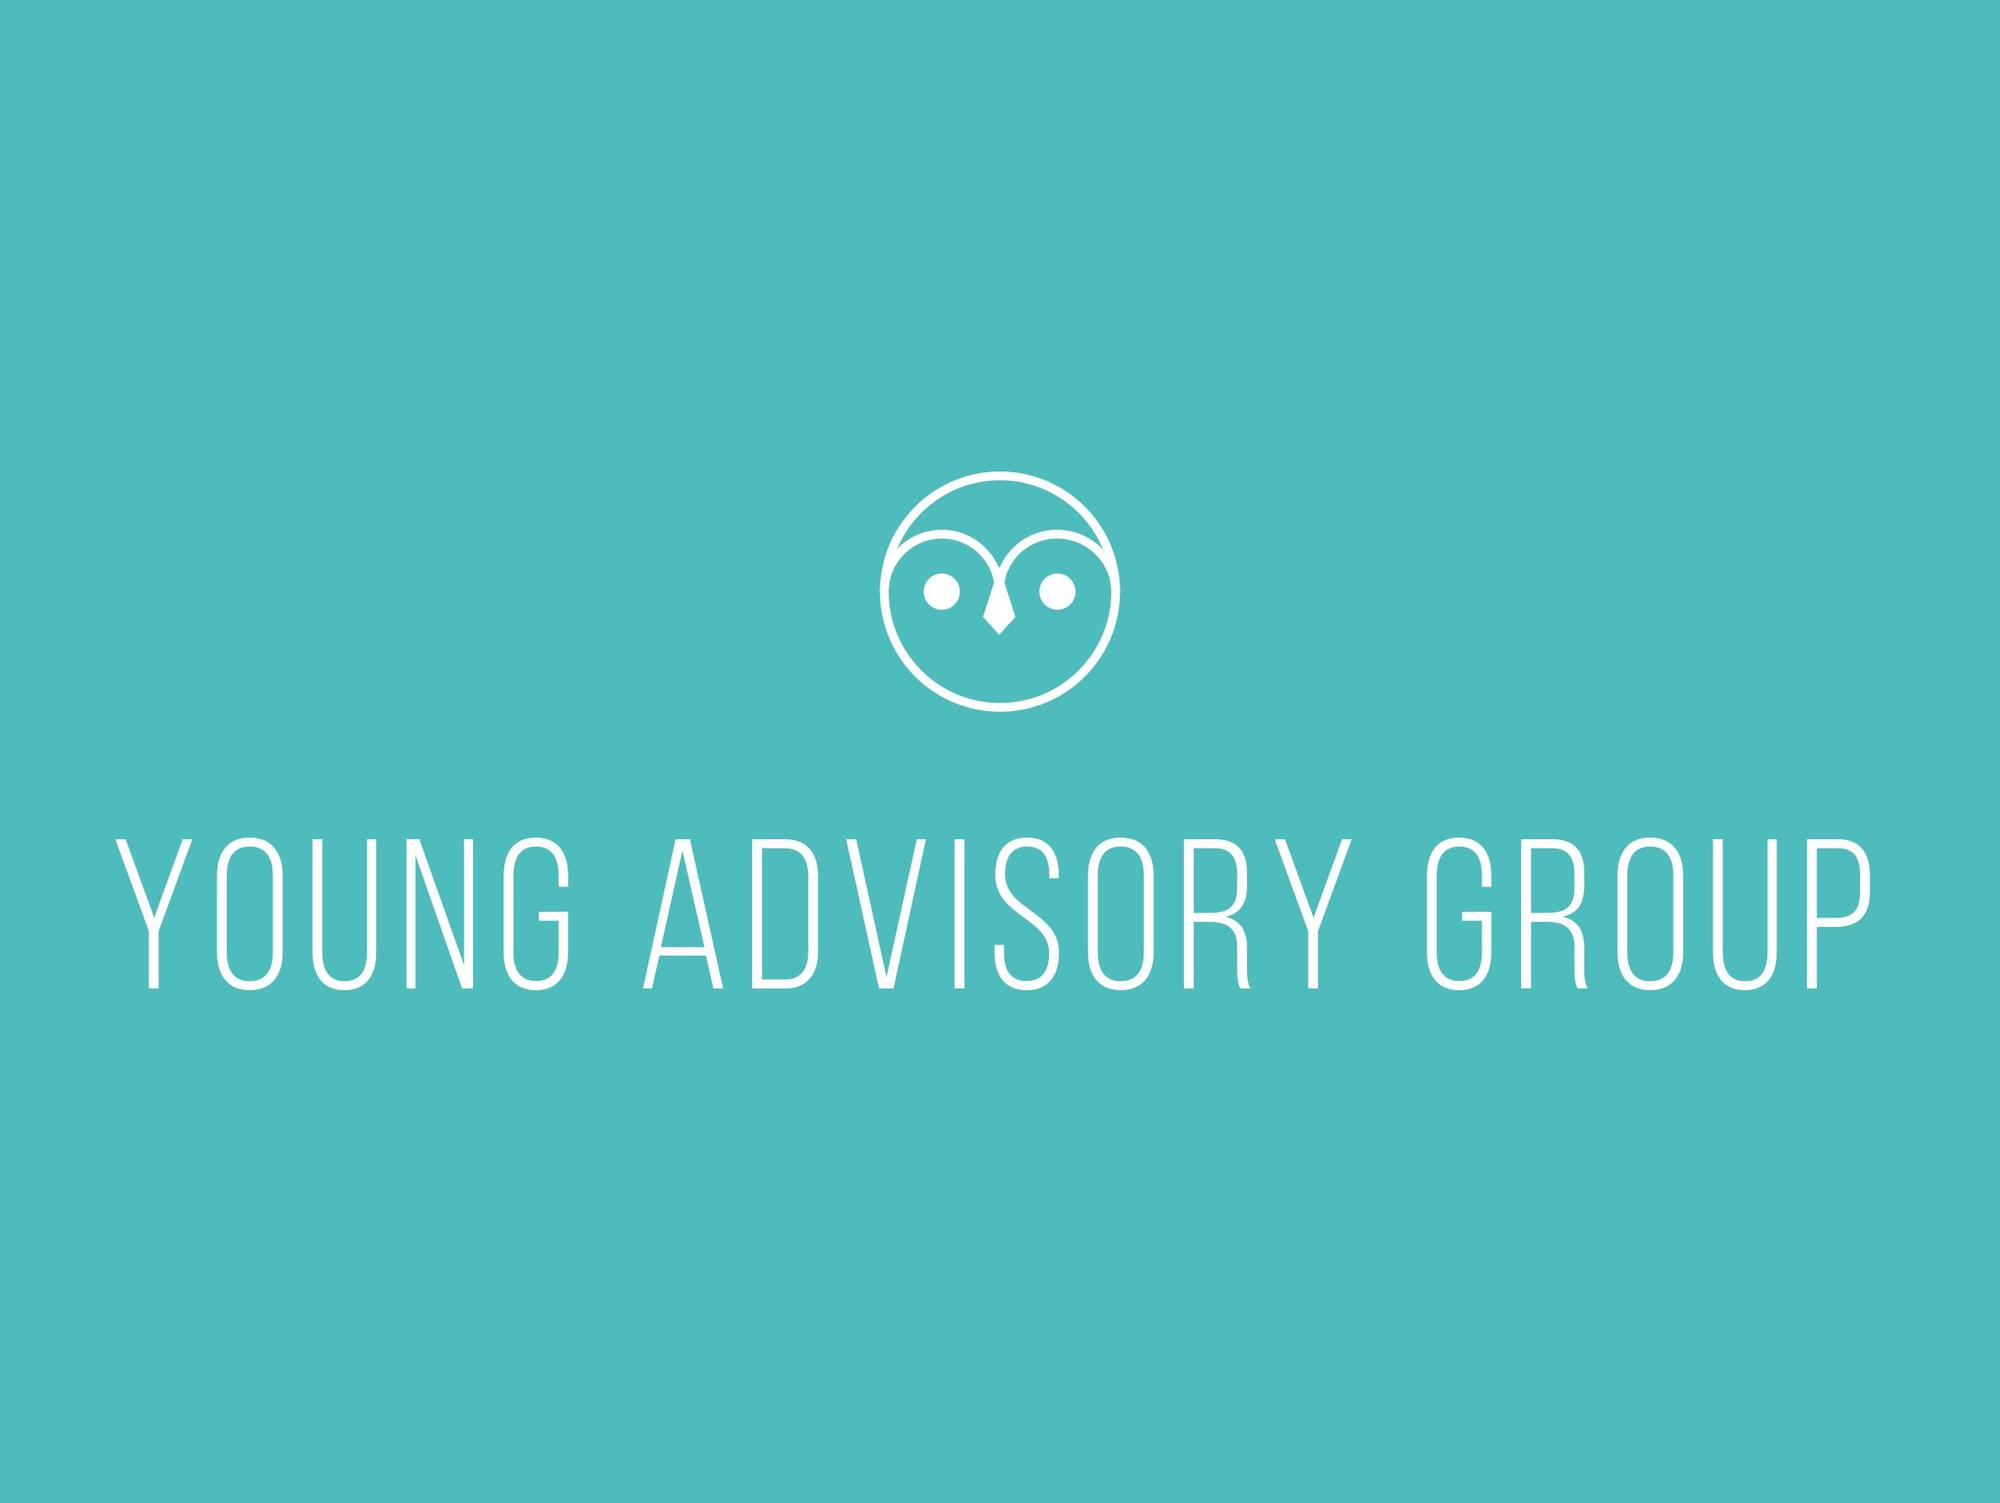 Case training door Young Advisory Group